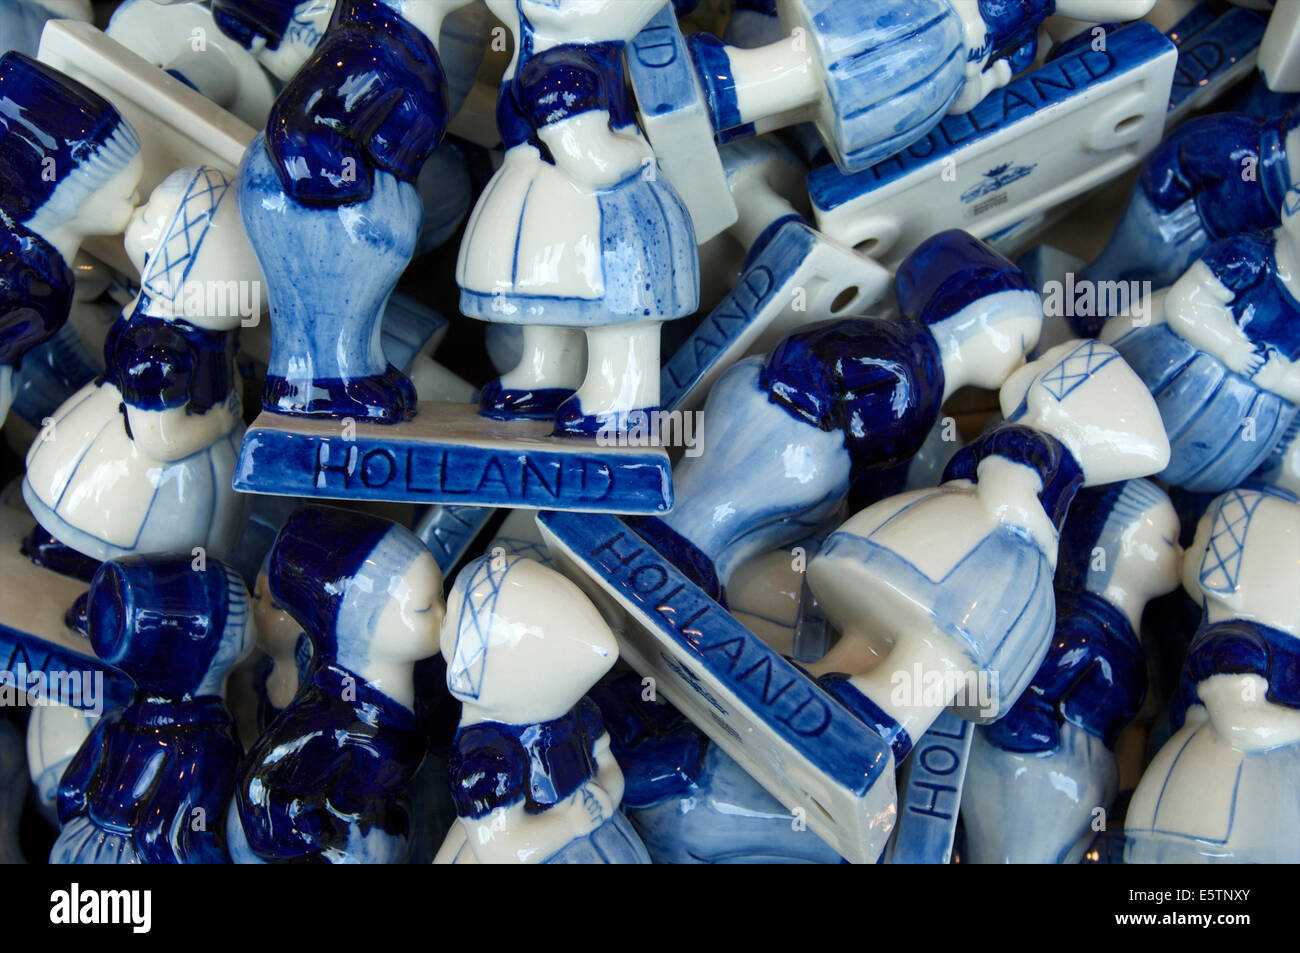 A basket with Delft Blue pottery dolls in traditional costume as souvenirs in a shop in Volendam, The Netherlands - Stock Image